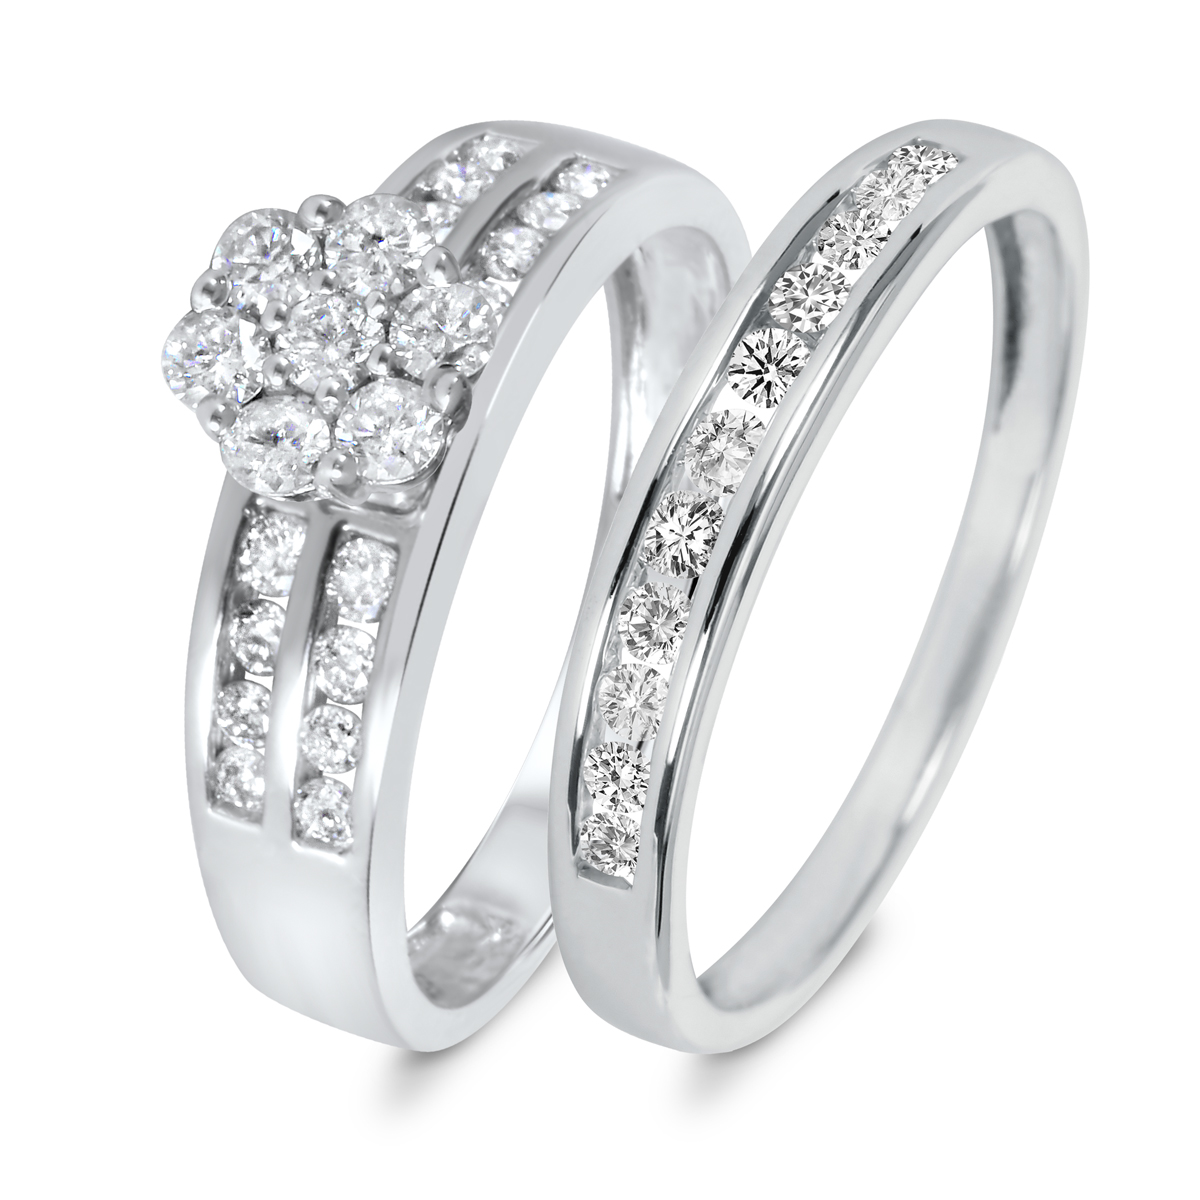 tw diamond womens bridal wedding ring set 10k white gold - White Gold Wedding Rings For Women